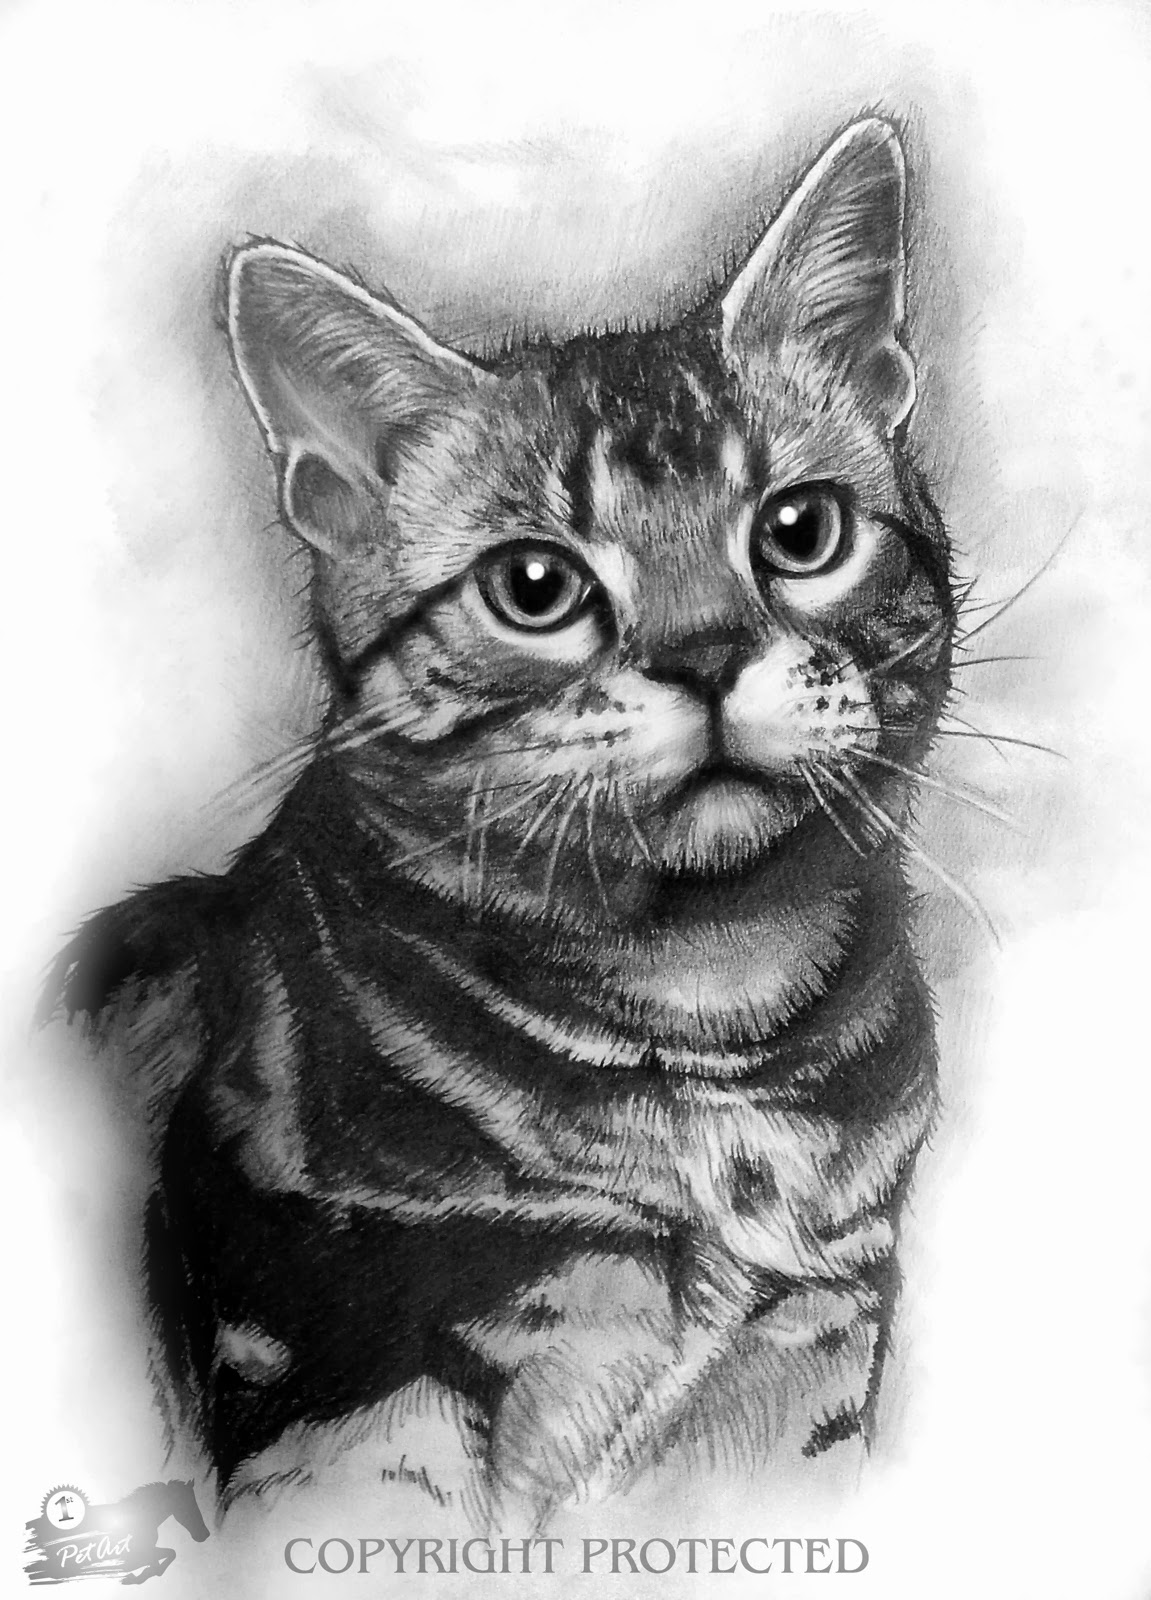 caterpillar drawing 40 great examples of cute and majestic cat drawings tail caterpillar drawing